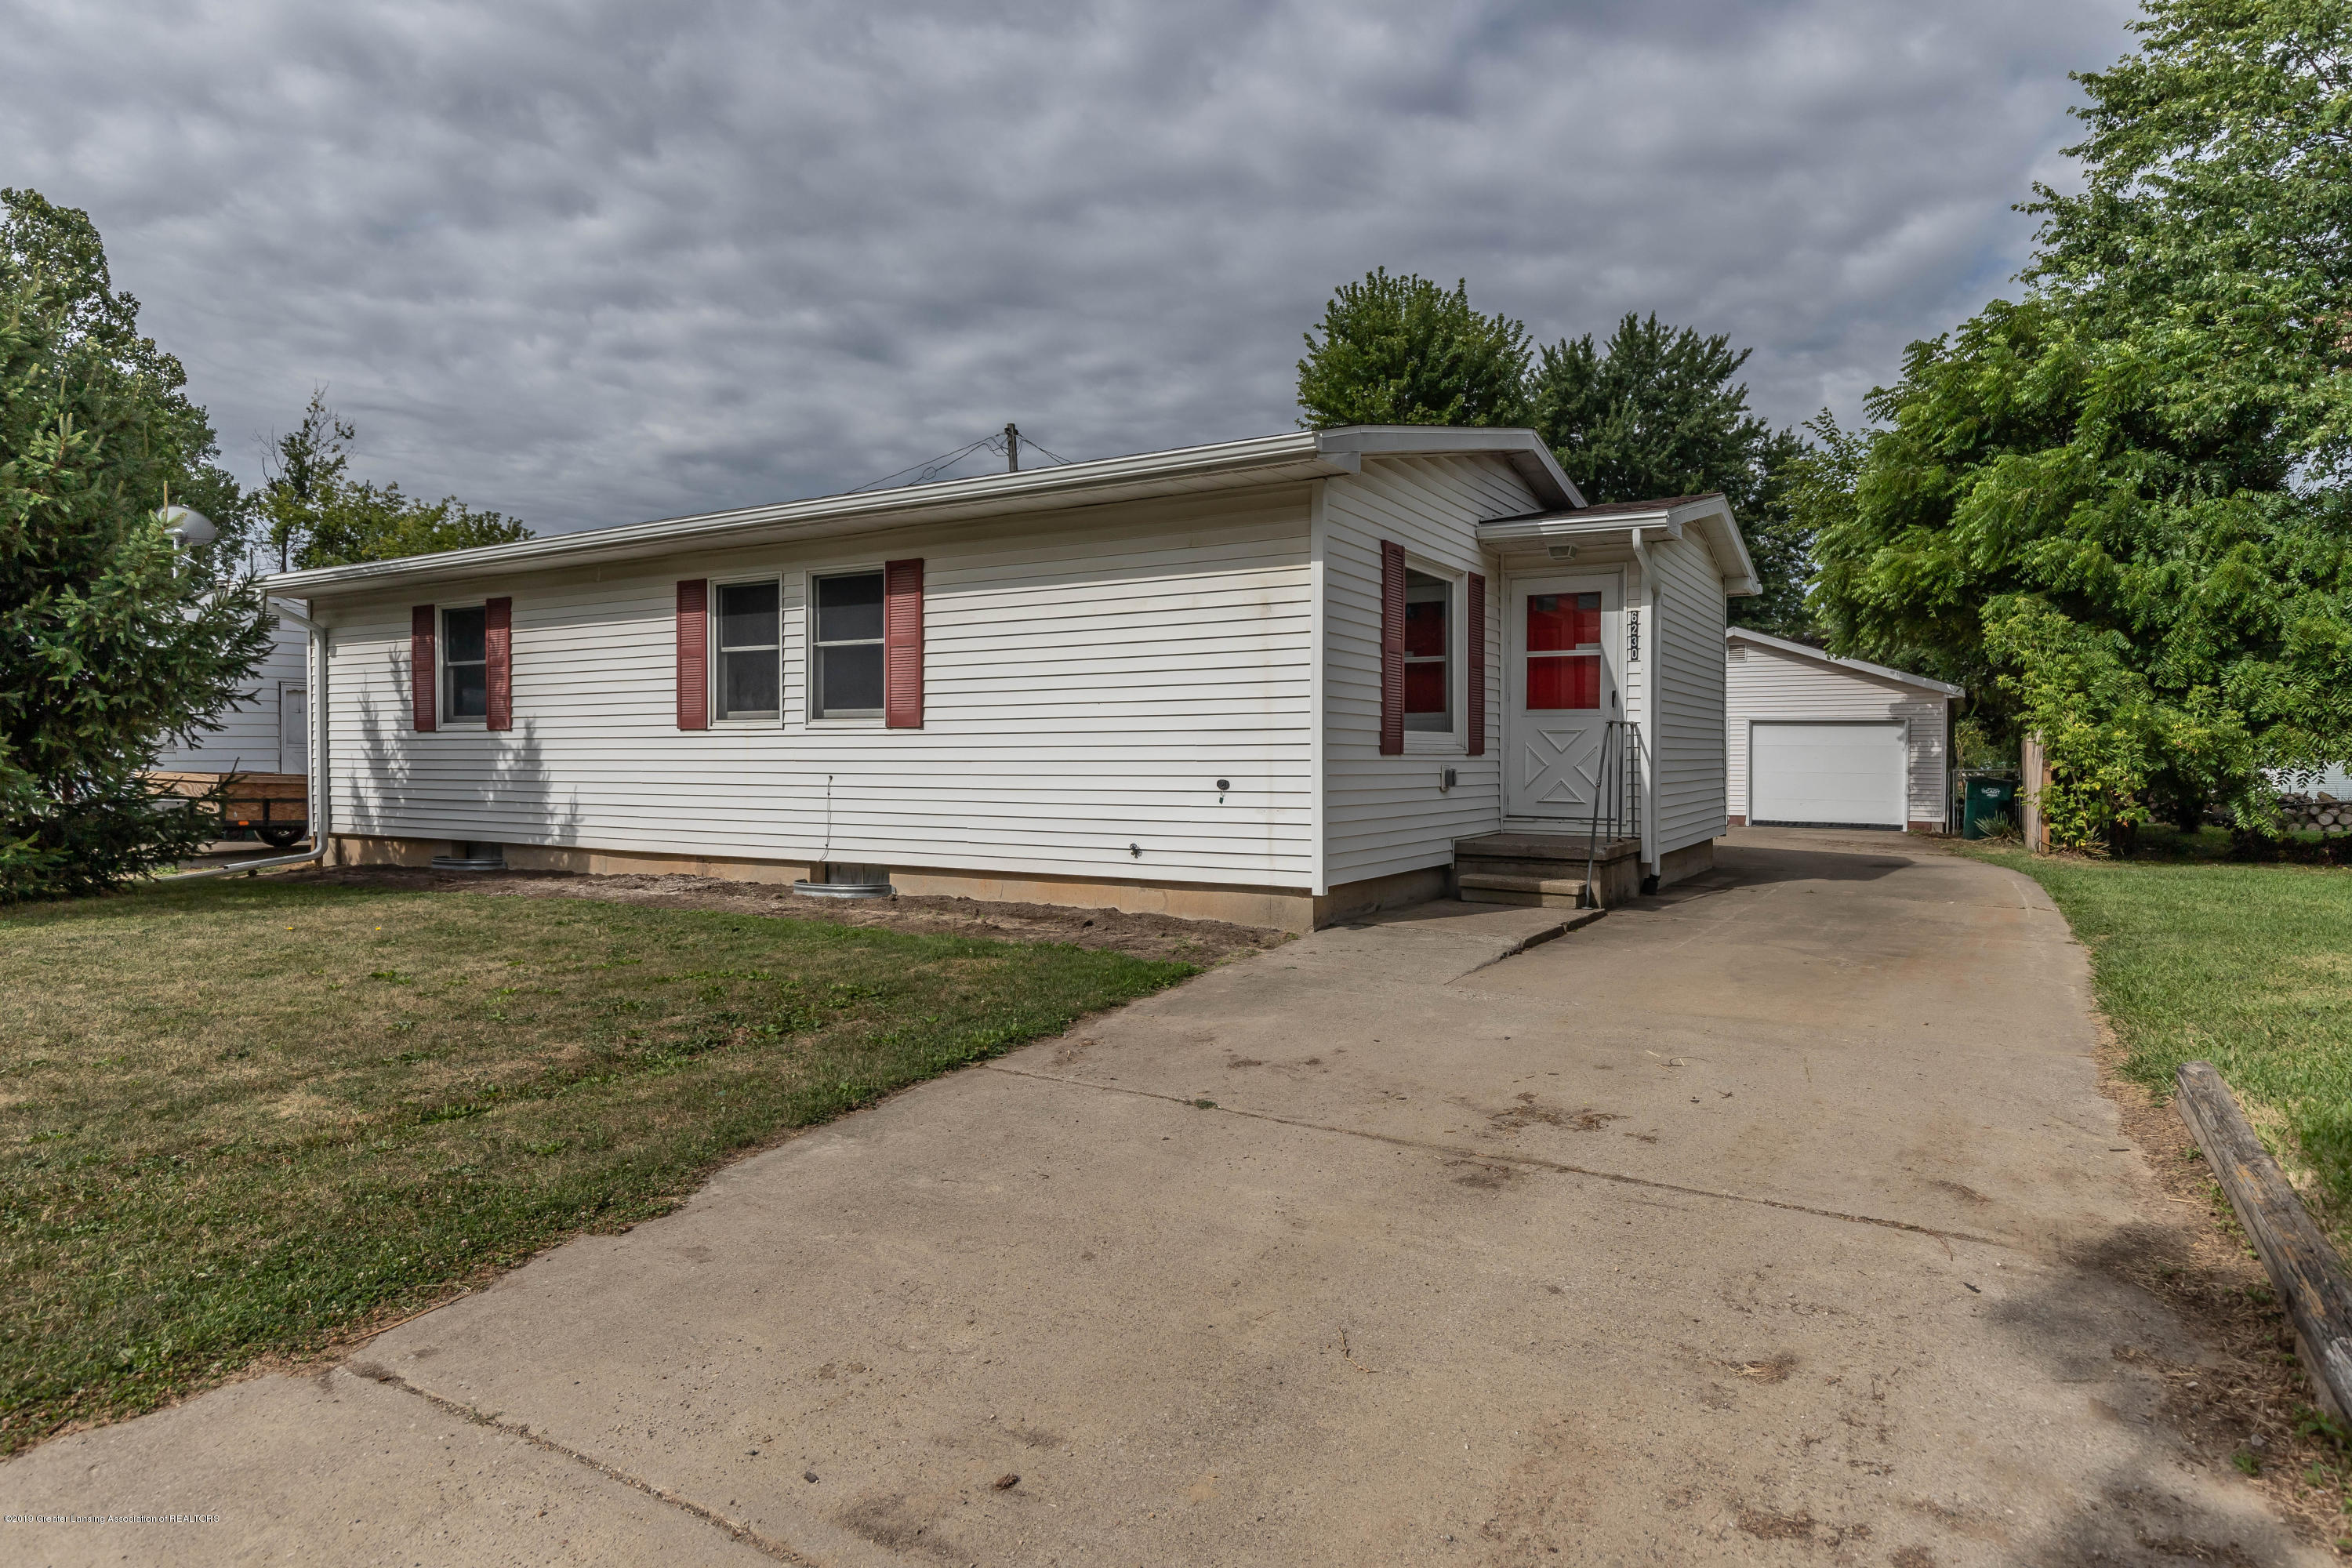 6230 Grovenburg Rd - grovenburgfront2 (1 of 1) - 2